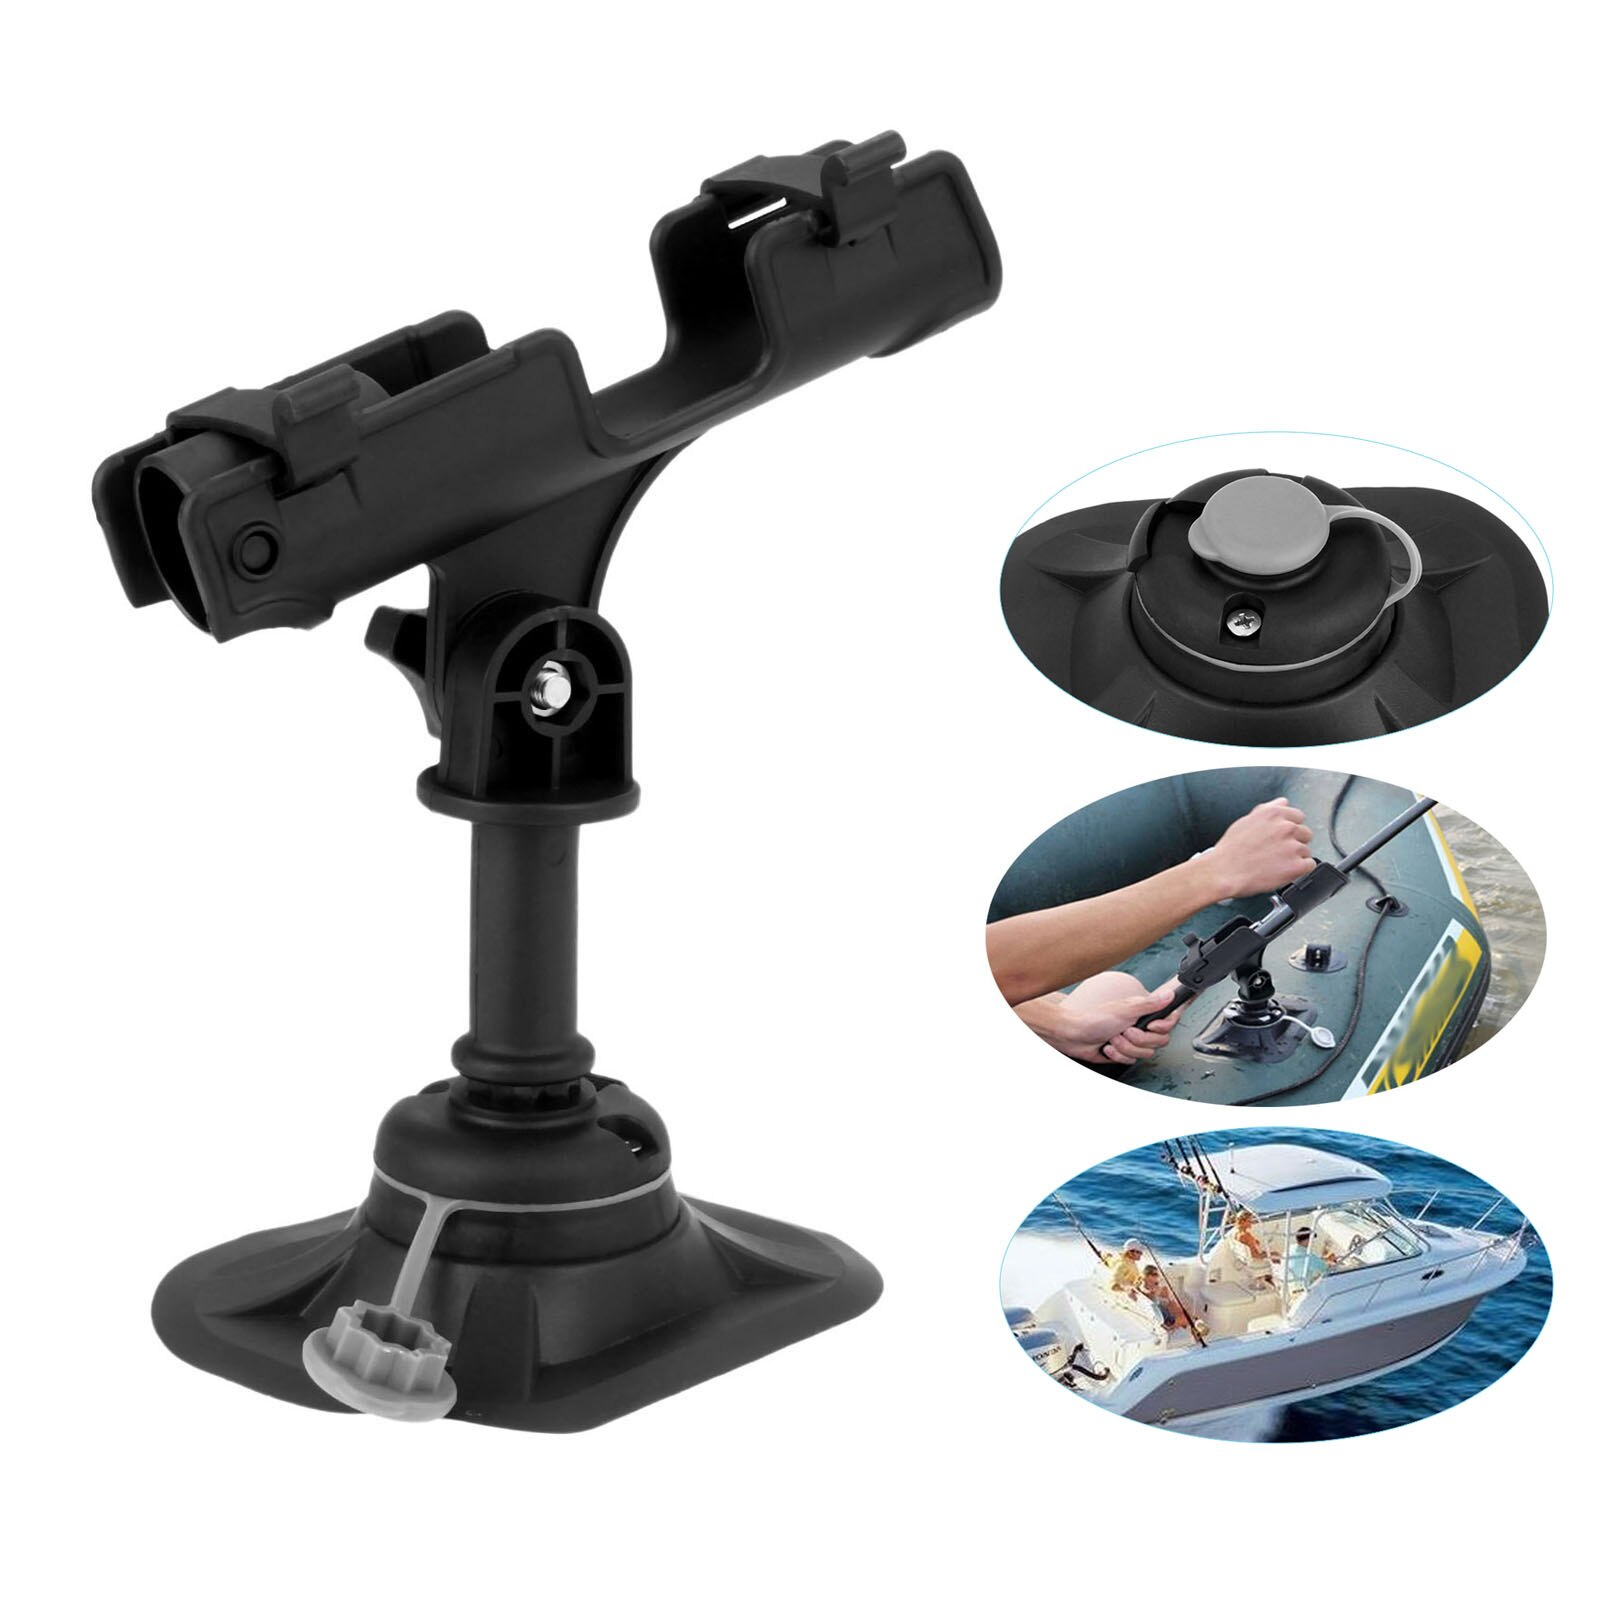 1 Pc Plastic Heavy Duty Boat Fishing Rod Rack Mount 360 Degree Adjustable Kayak Support Pole Stand Bracket Marine Yachts Boats